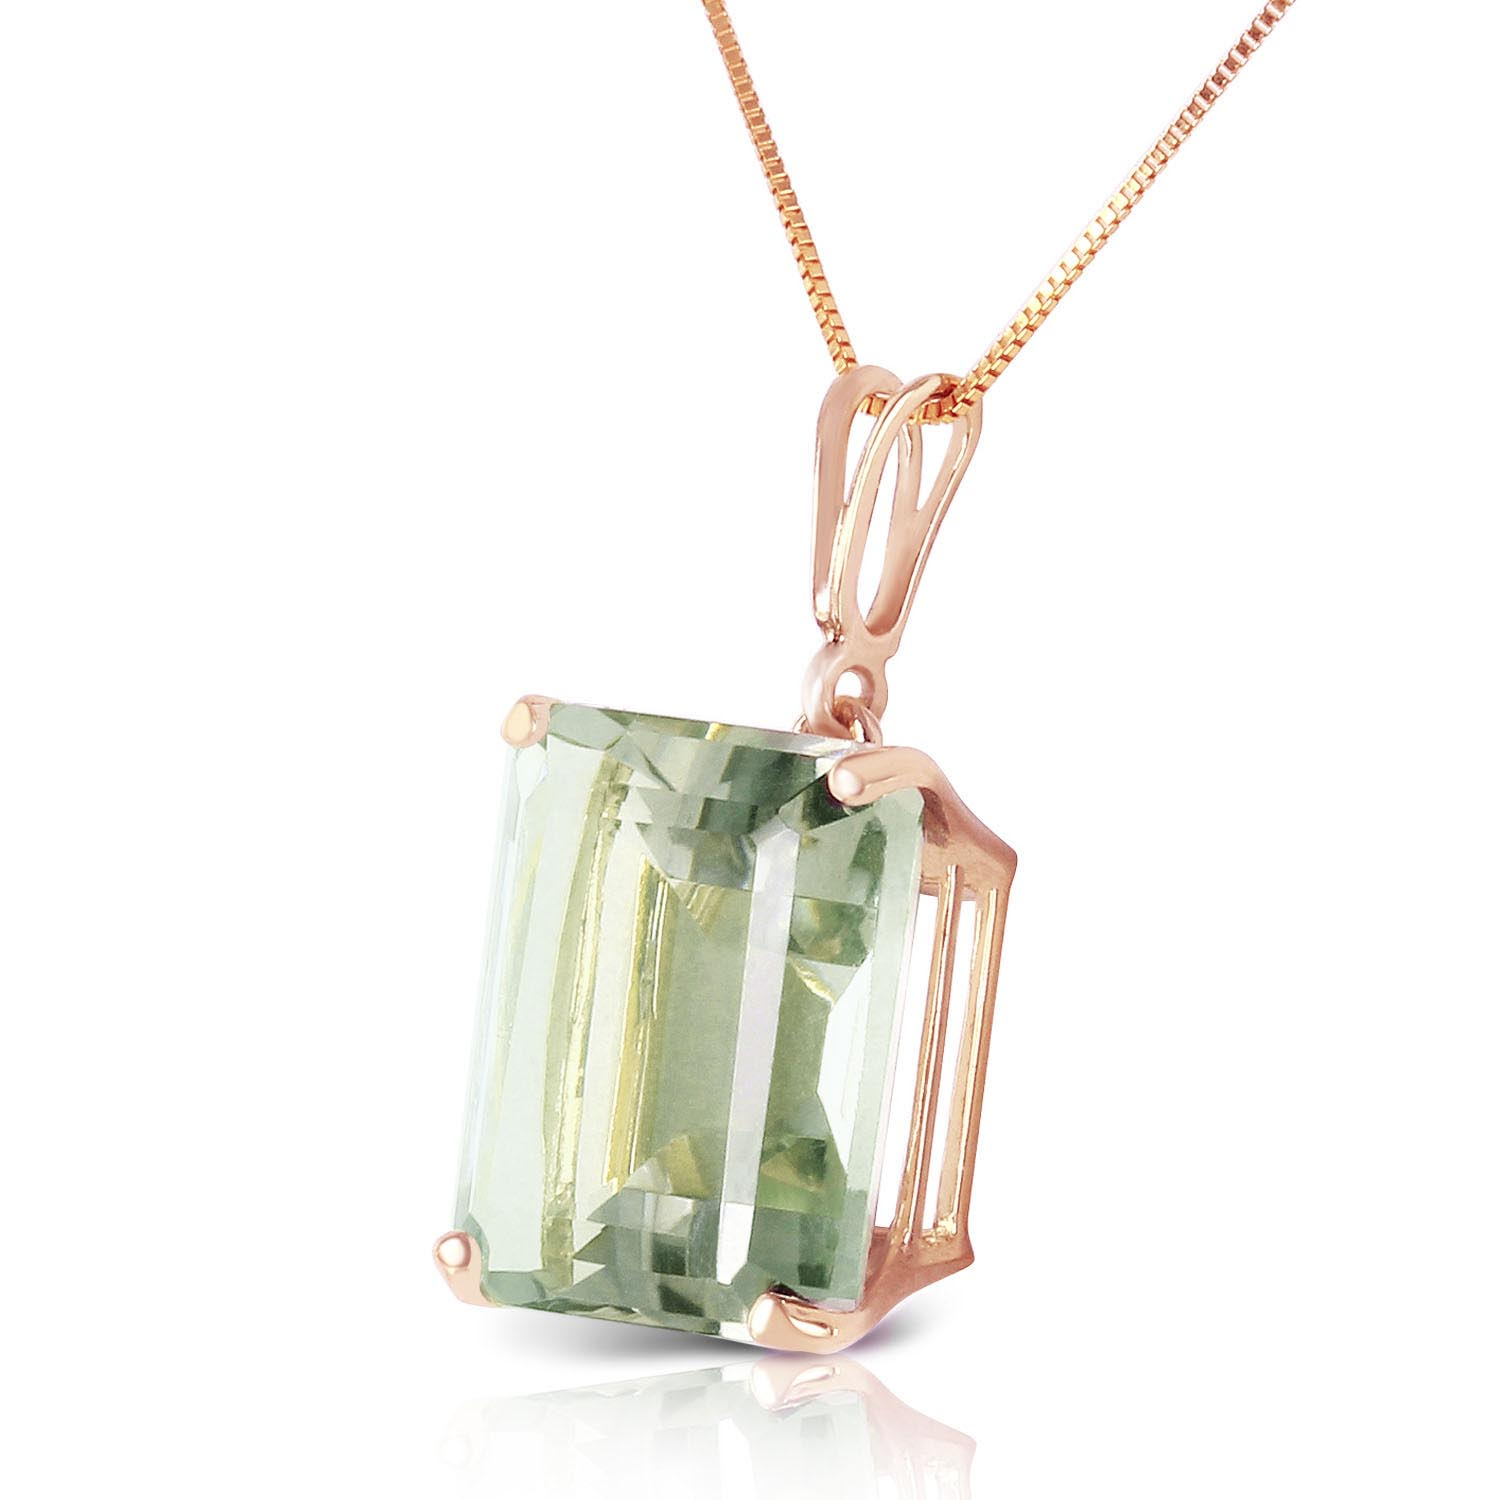 Green Amethyst Pendant Necklace 6.5ct in 9ct Rose Gold